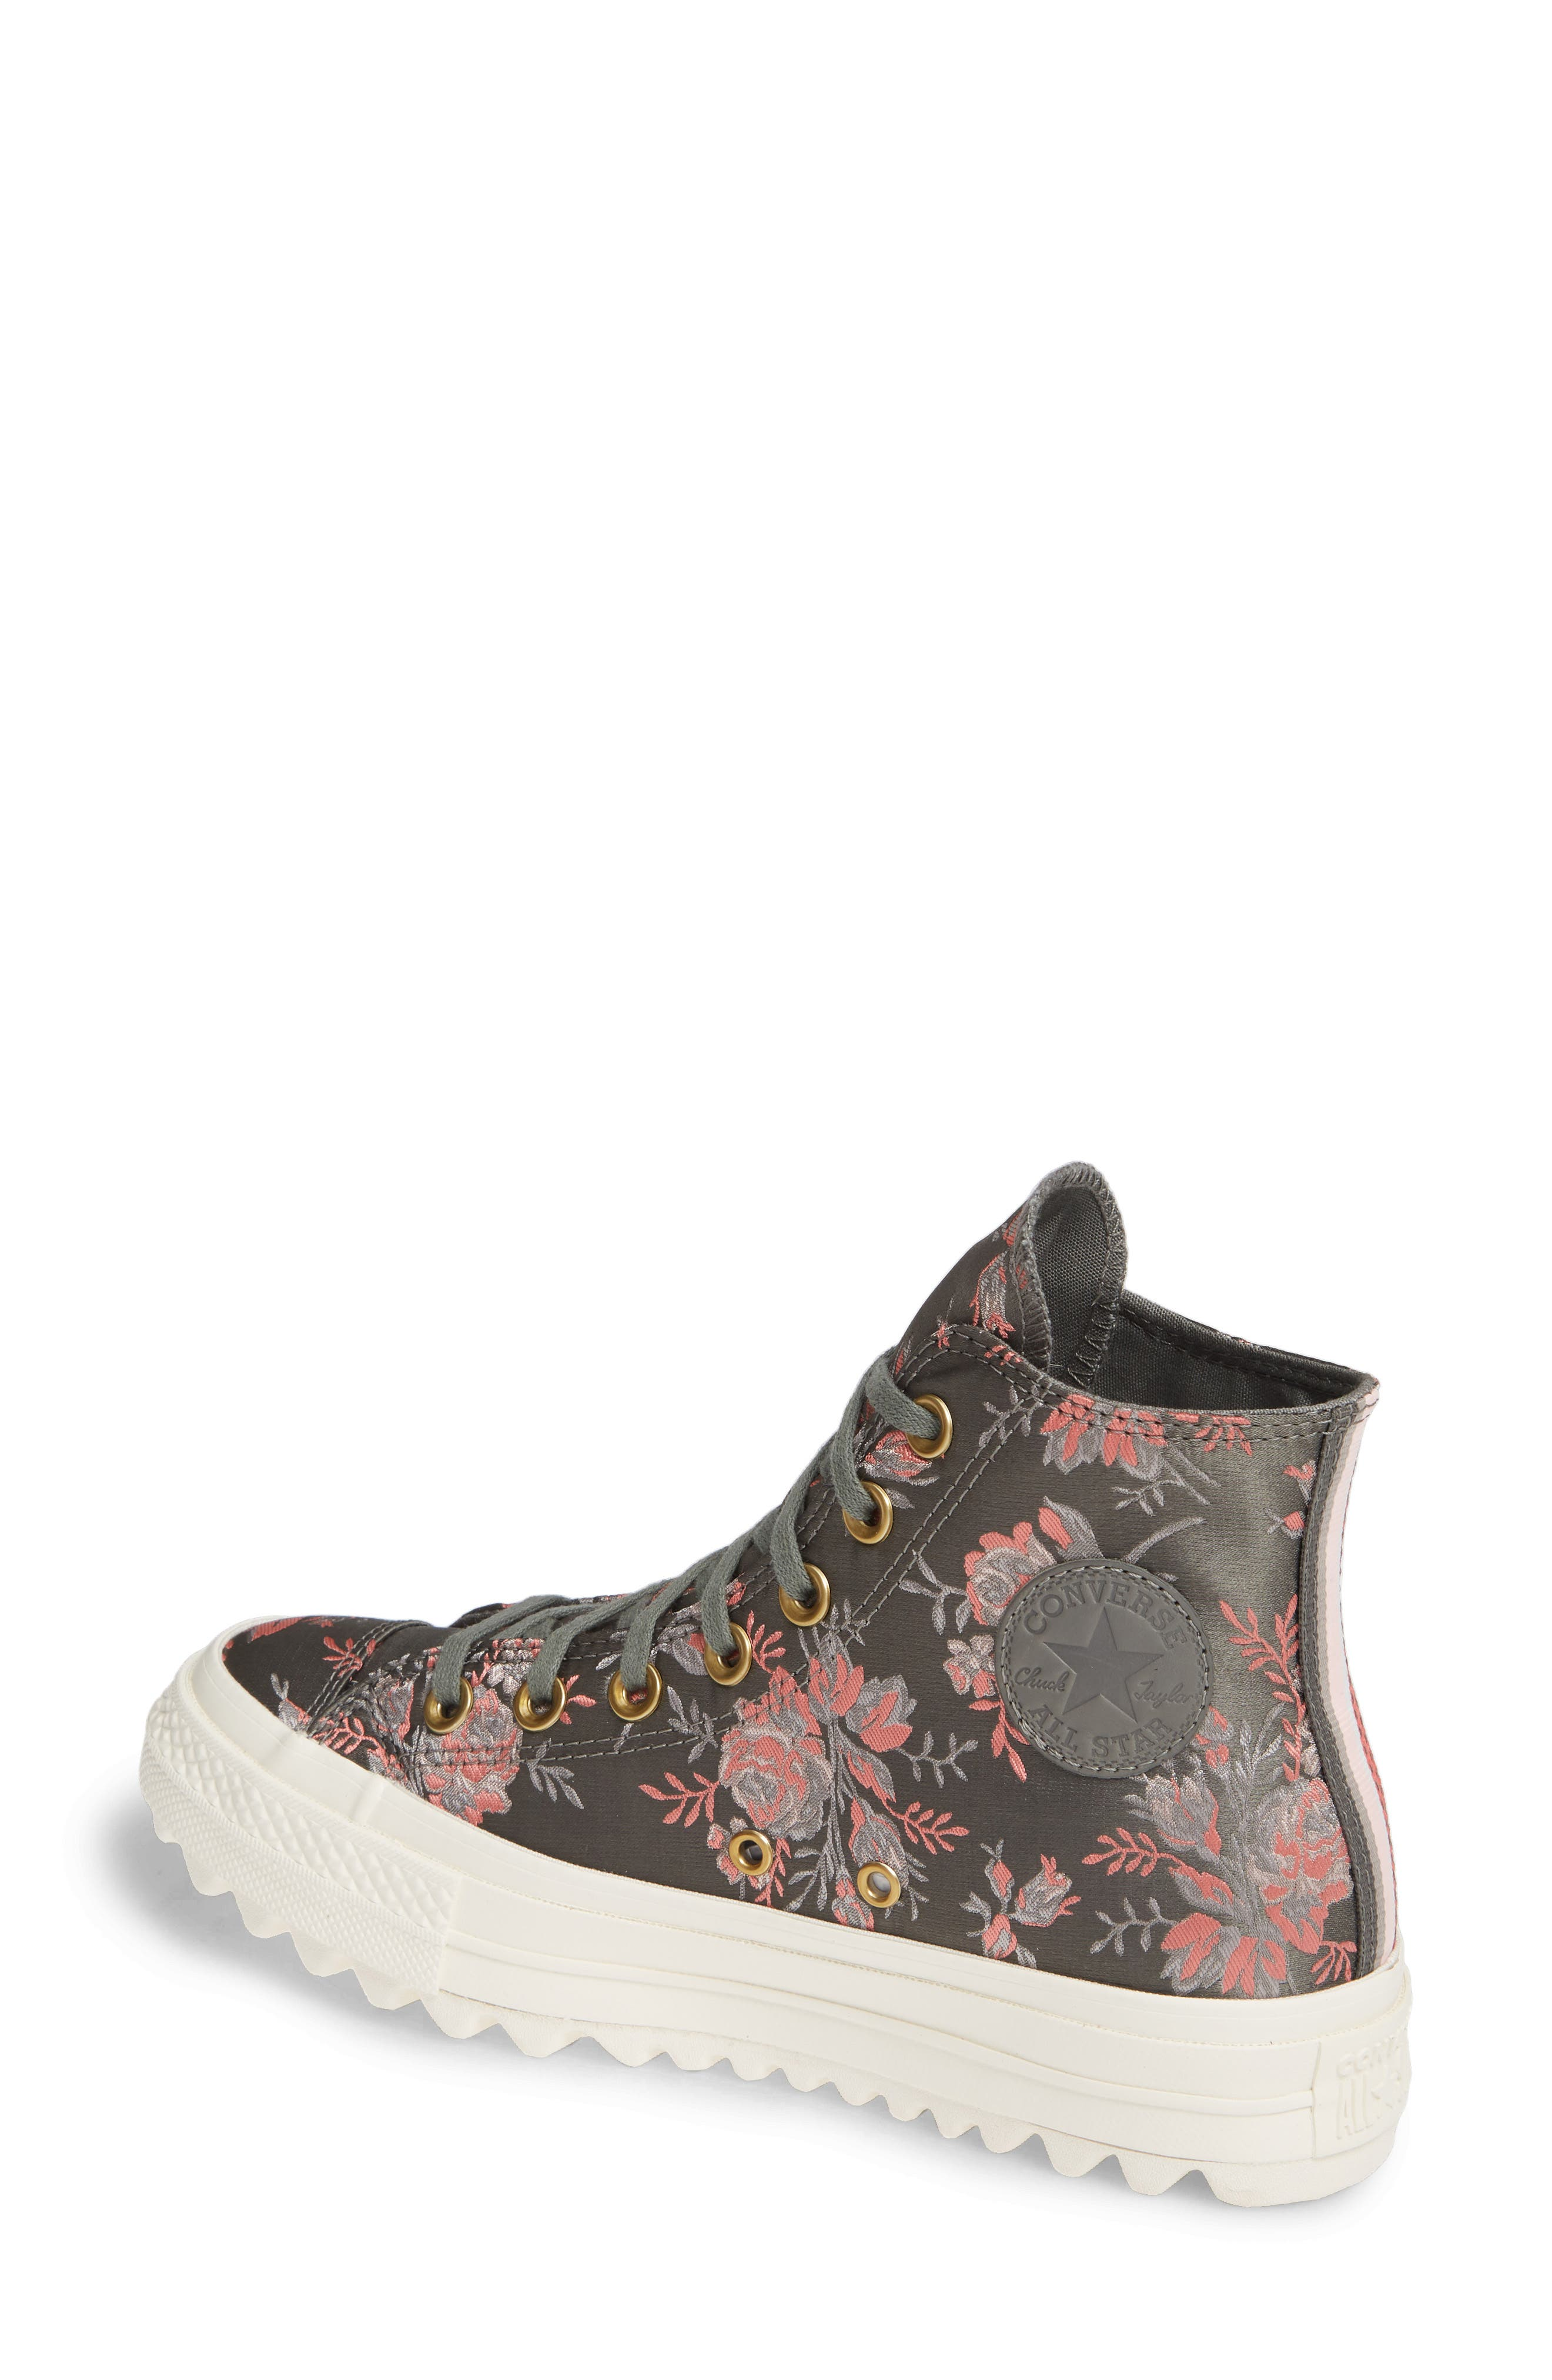 Chuck Taylor<sup>®</sup> All Star<sup>®</sup> Lift Ripple Parkway Floral High Top Sneaker,                             Alternate thumbnail 2, color,                             020